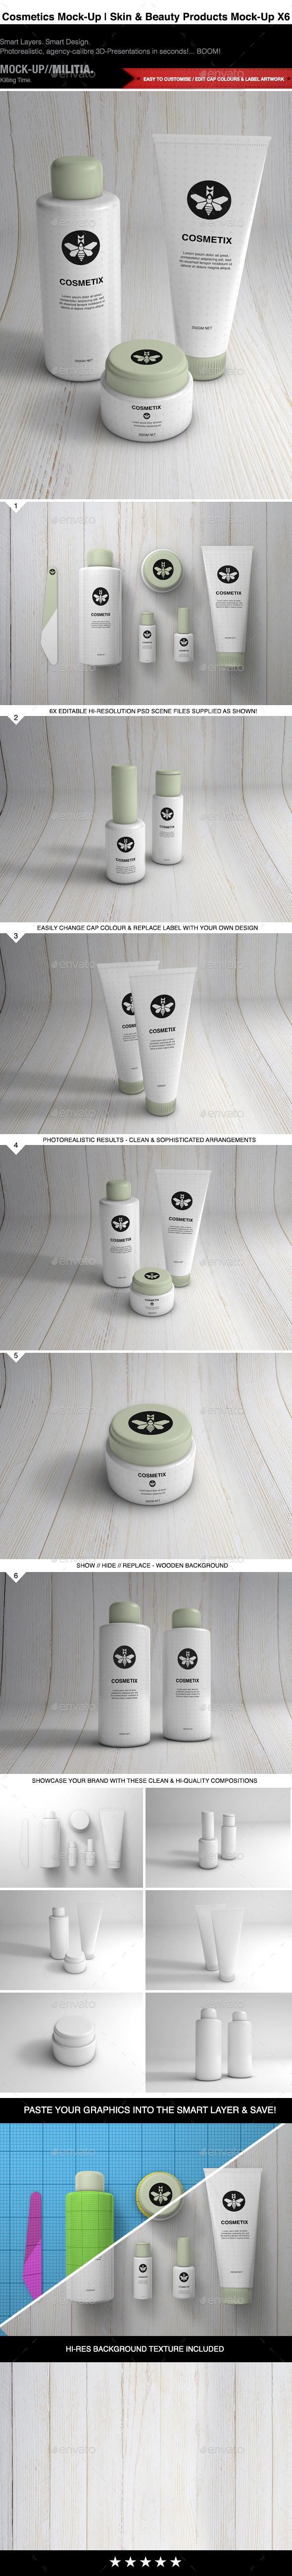 Cosmetics Mock-Up   Toiletries & Make Up Mock-Up   Download: http://graphicriver.net/item/cosmetics-mockup-toiletries-make-up-mockup/11043438?ref=ksioks